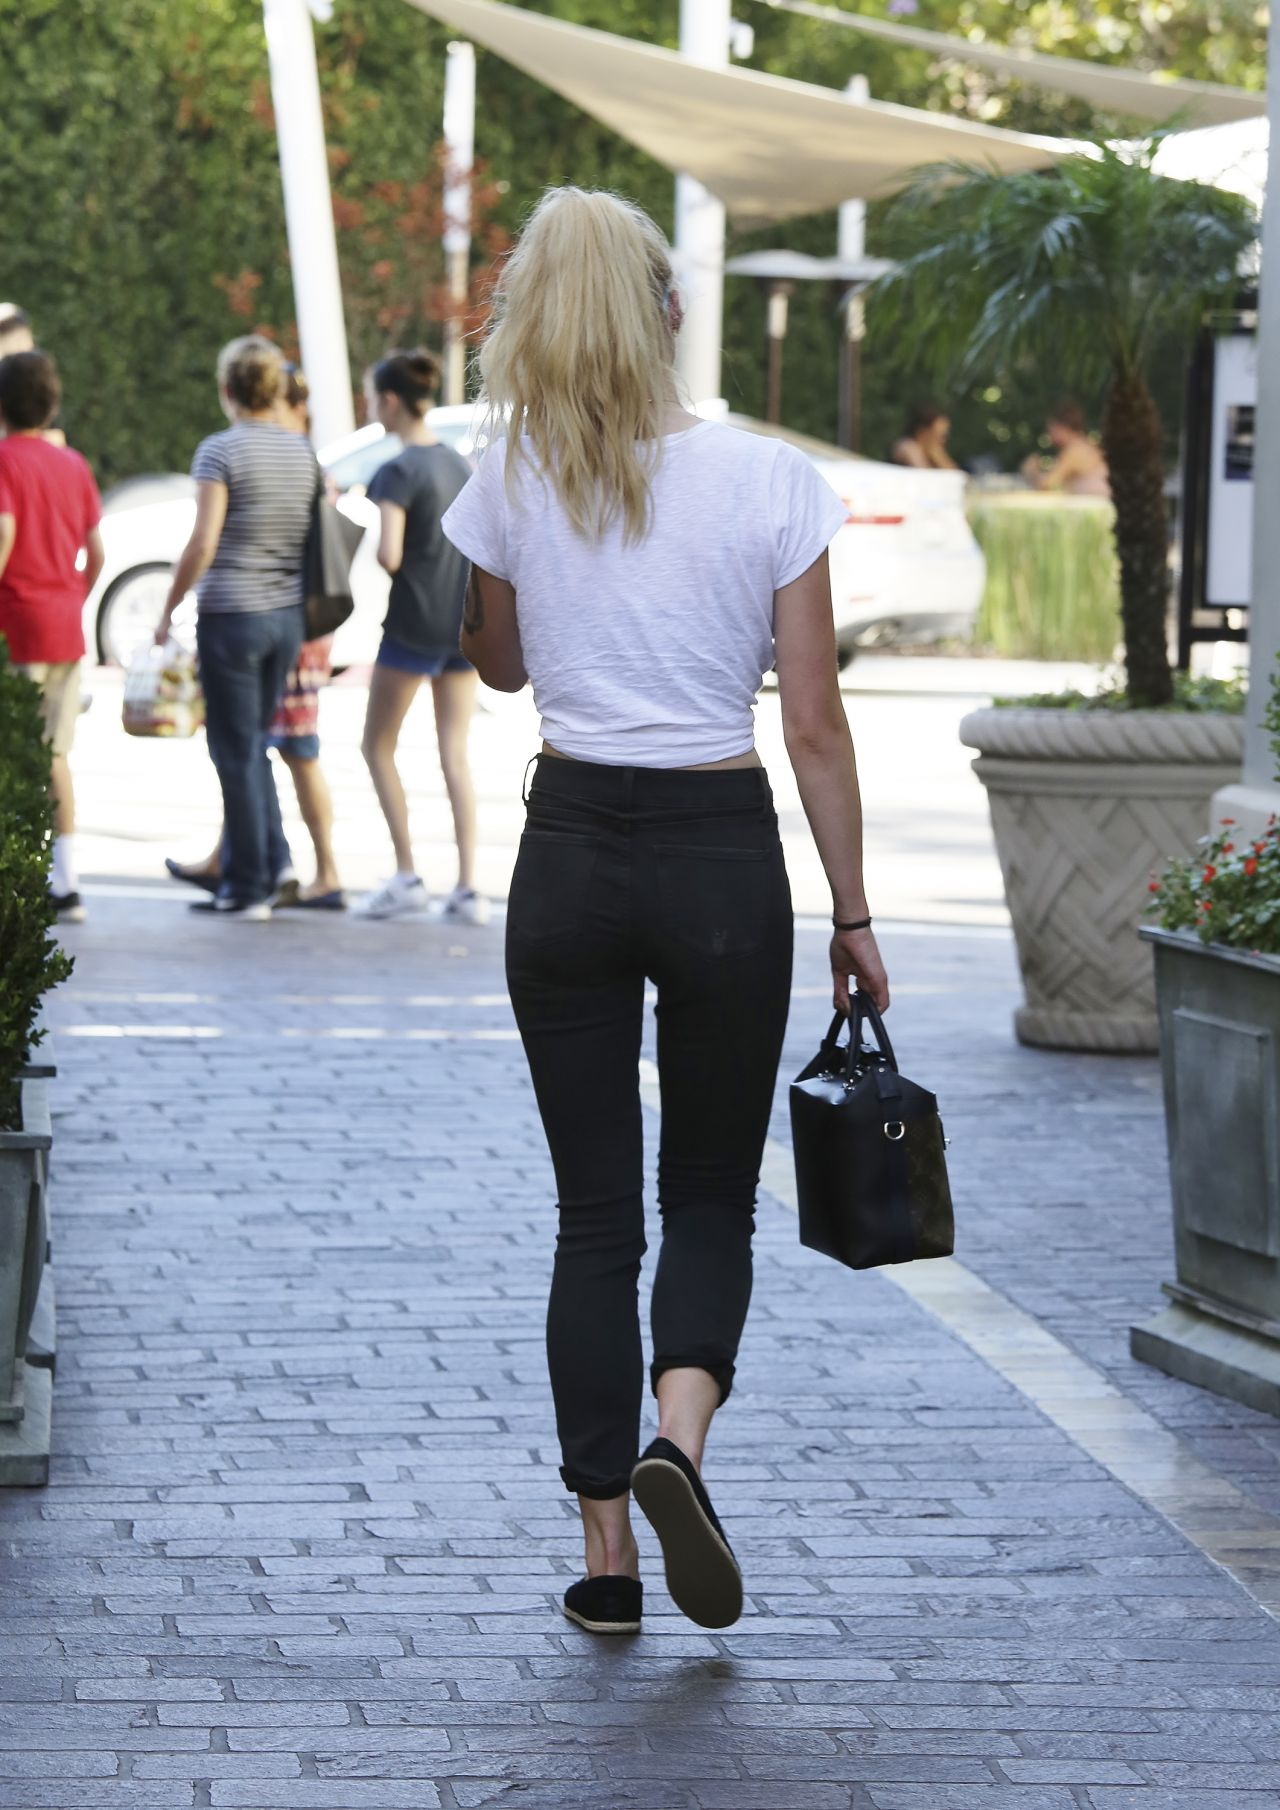 Sophie Turner - Booty in Tight Jeans - West Hollywood 8/18/2016